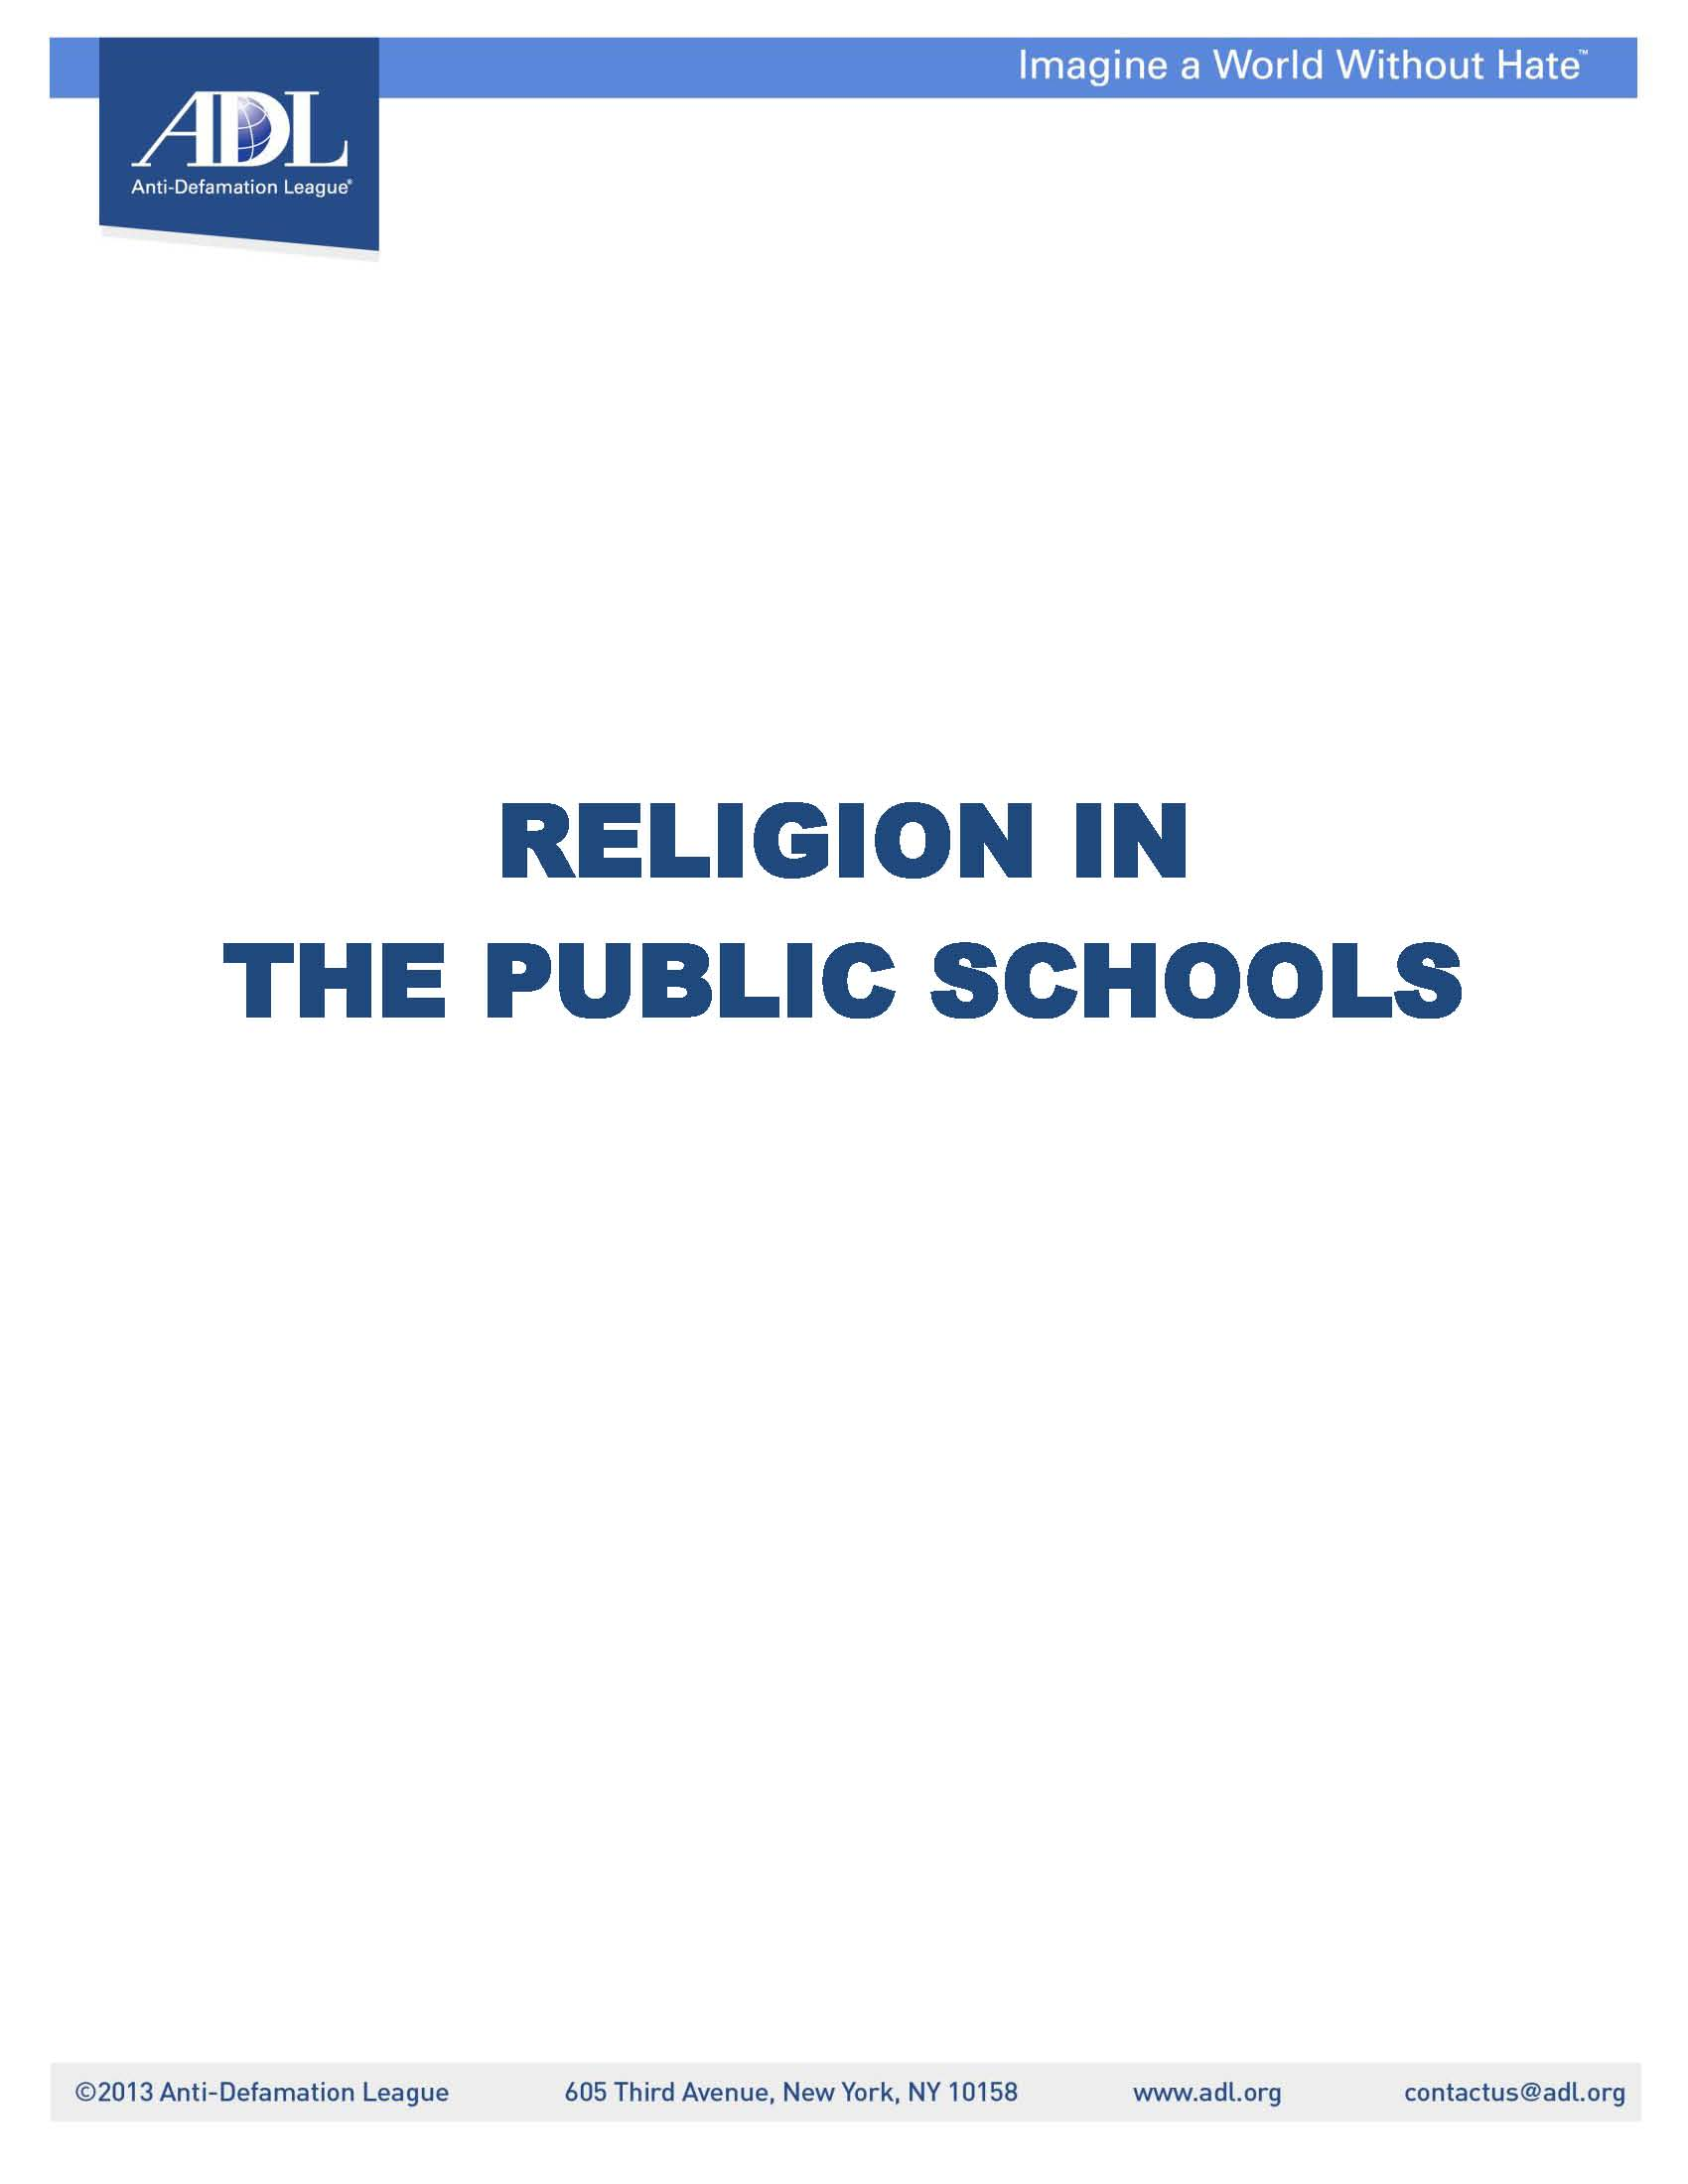 Religion in the Public Schools LARGE